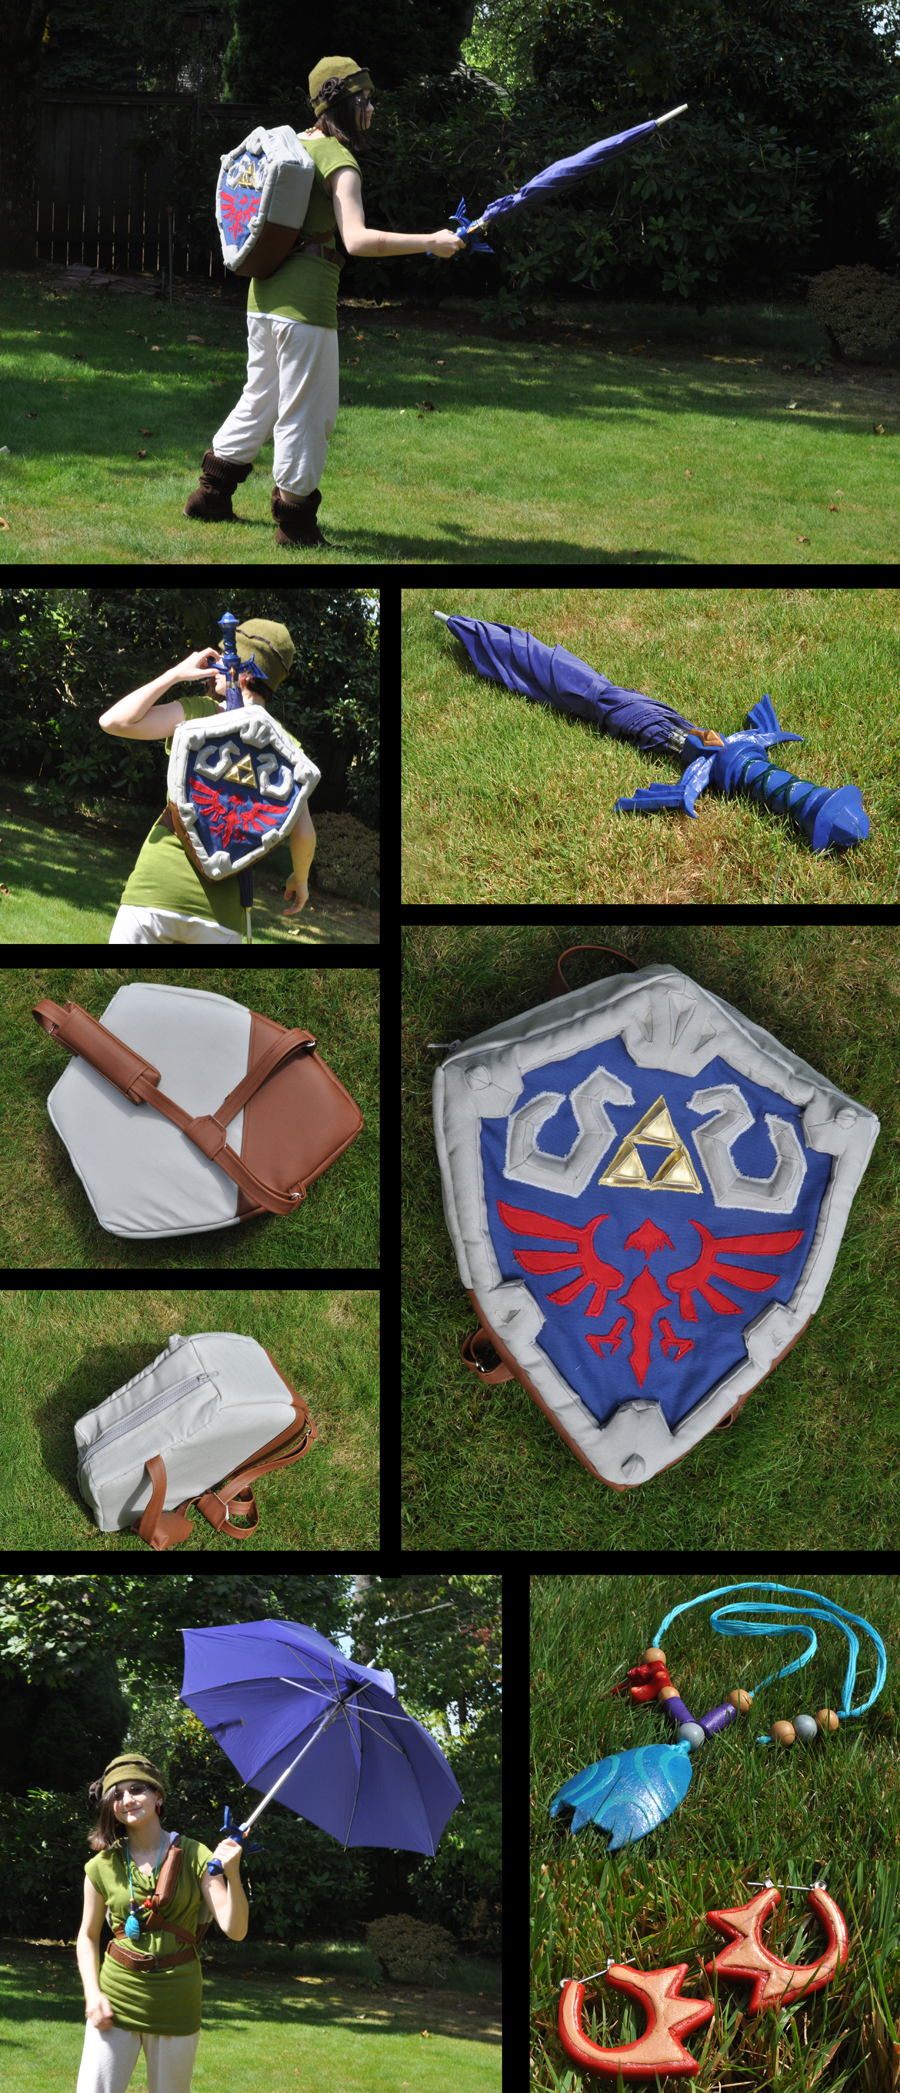 Skyward sword link casual cosplay by k times two on deviantart skyward sword link casual cosplay by k times two baditri Images